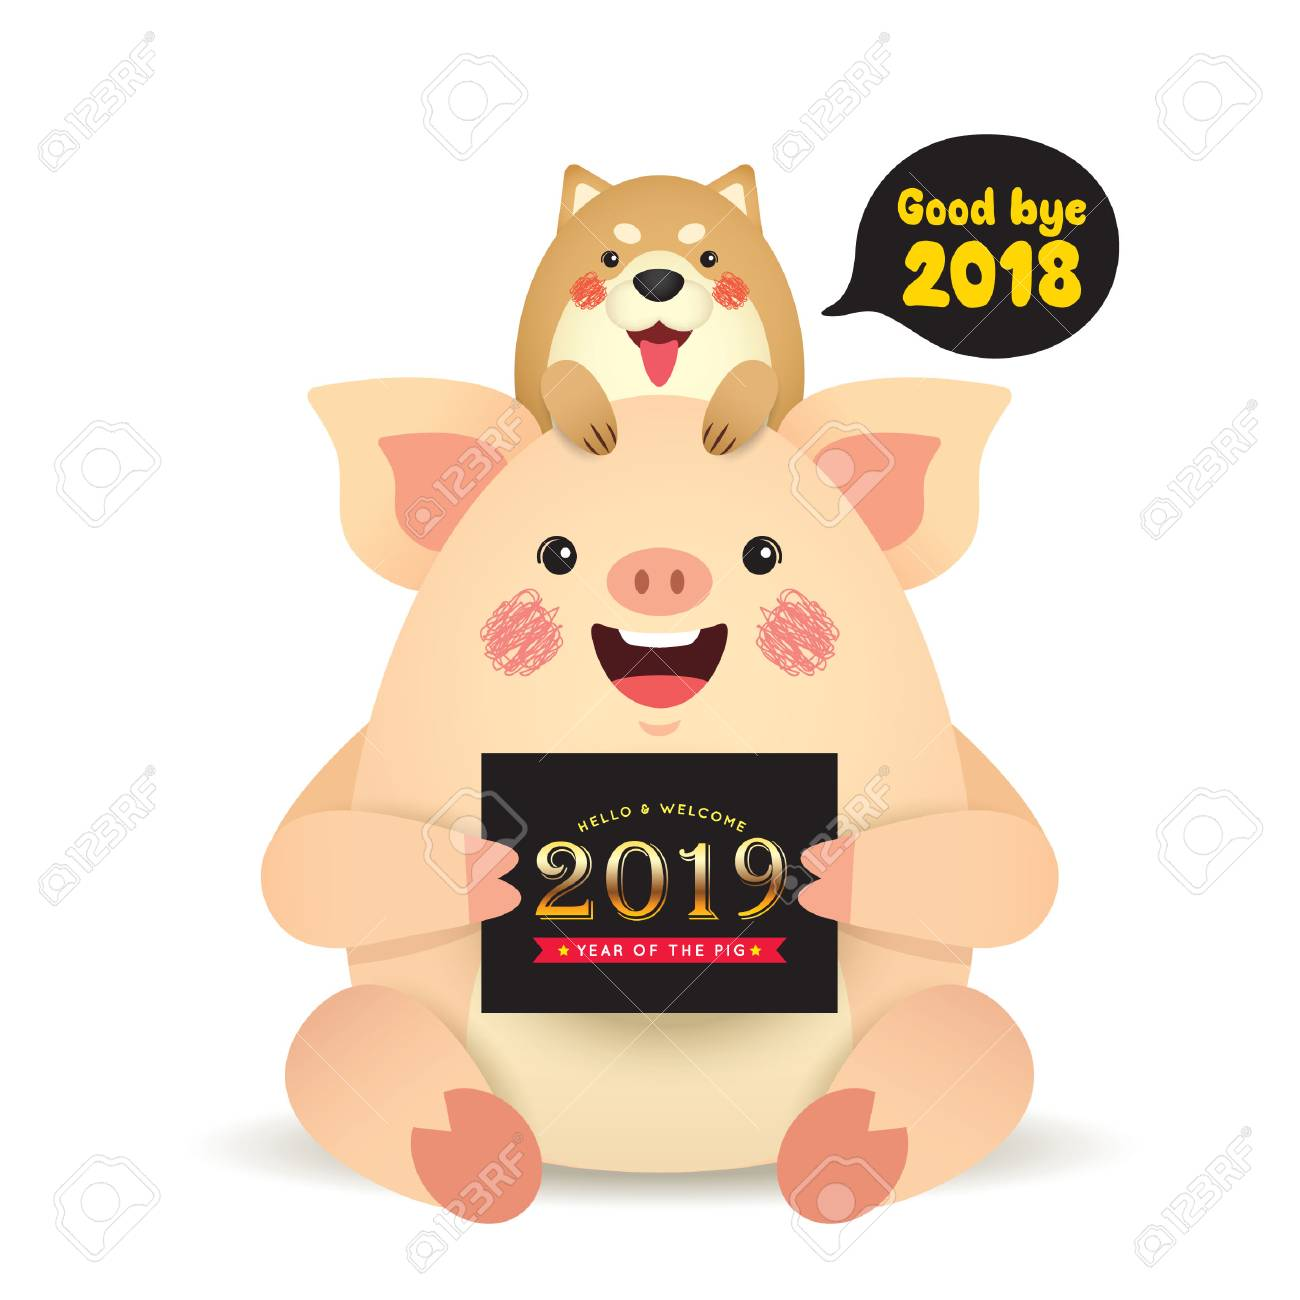 Good bye 2018 and welcome 2019  Cute cartoon dog and pig with